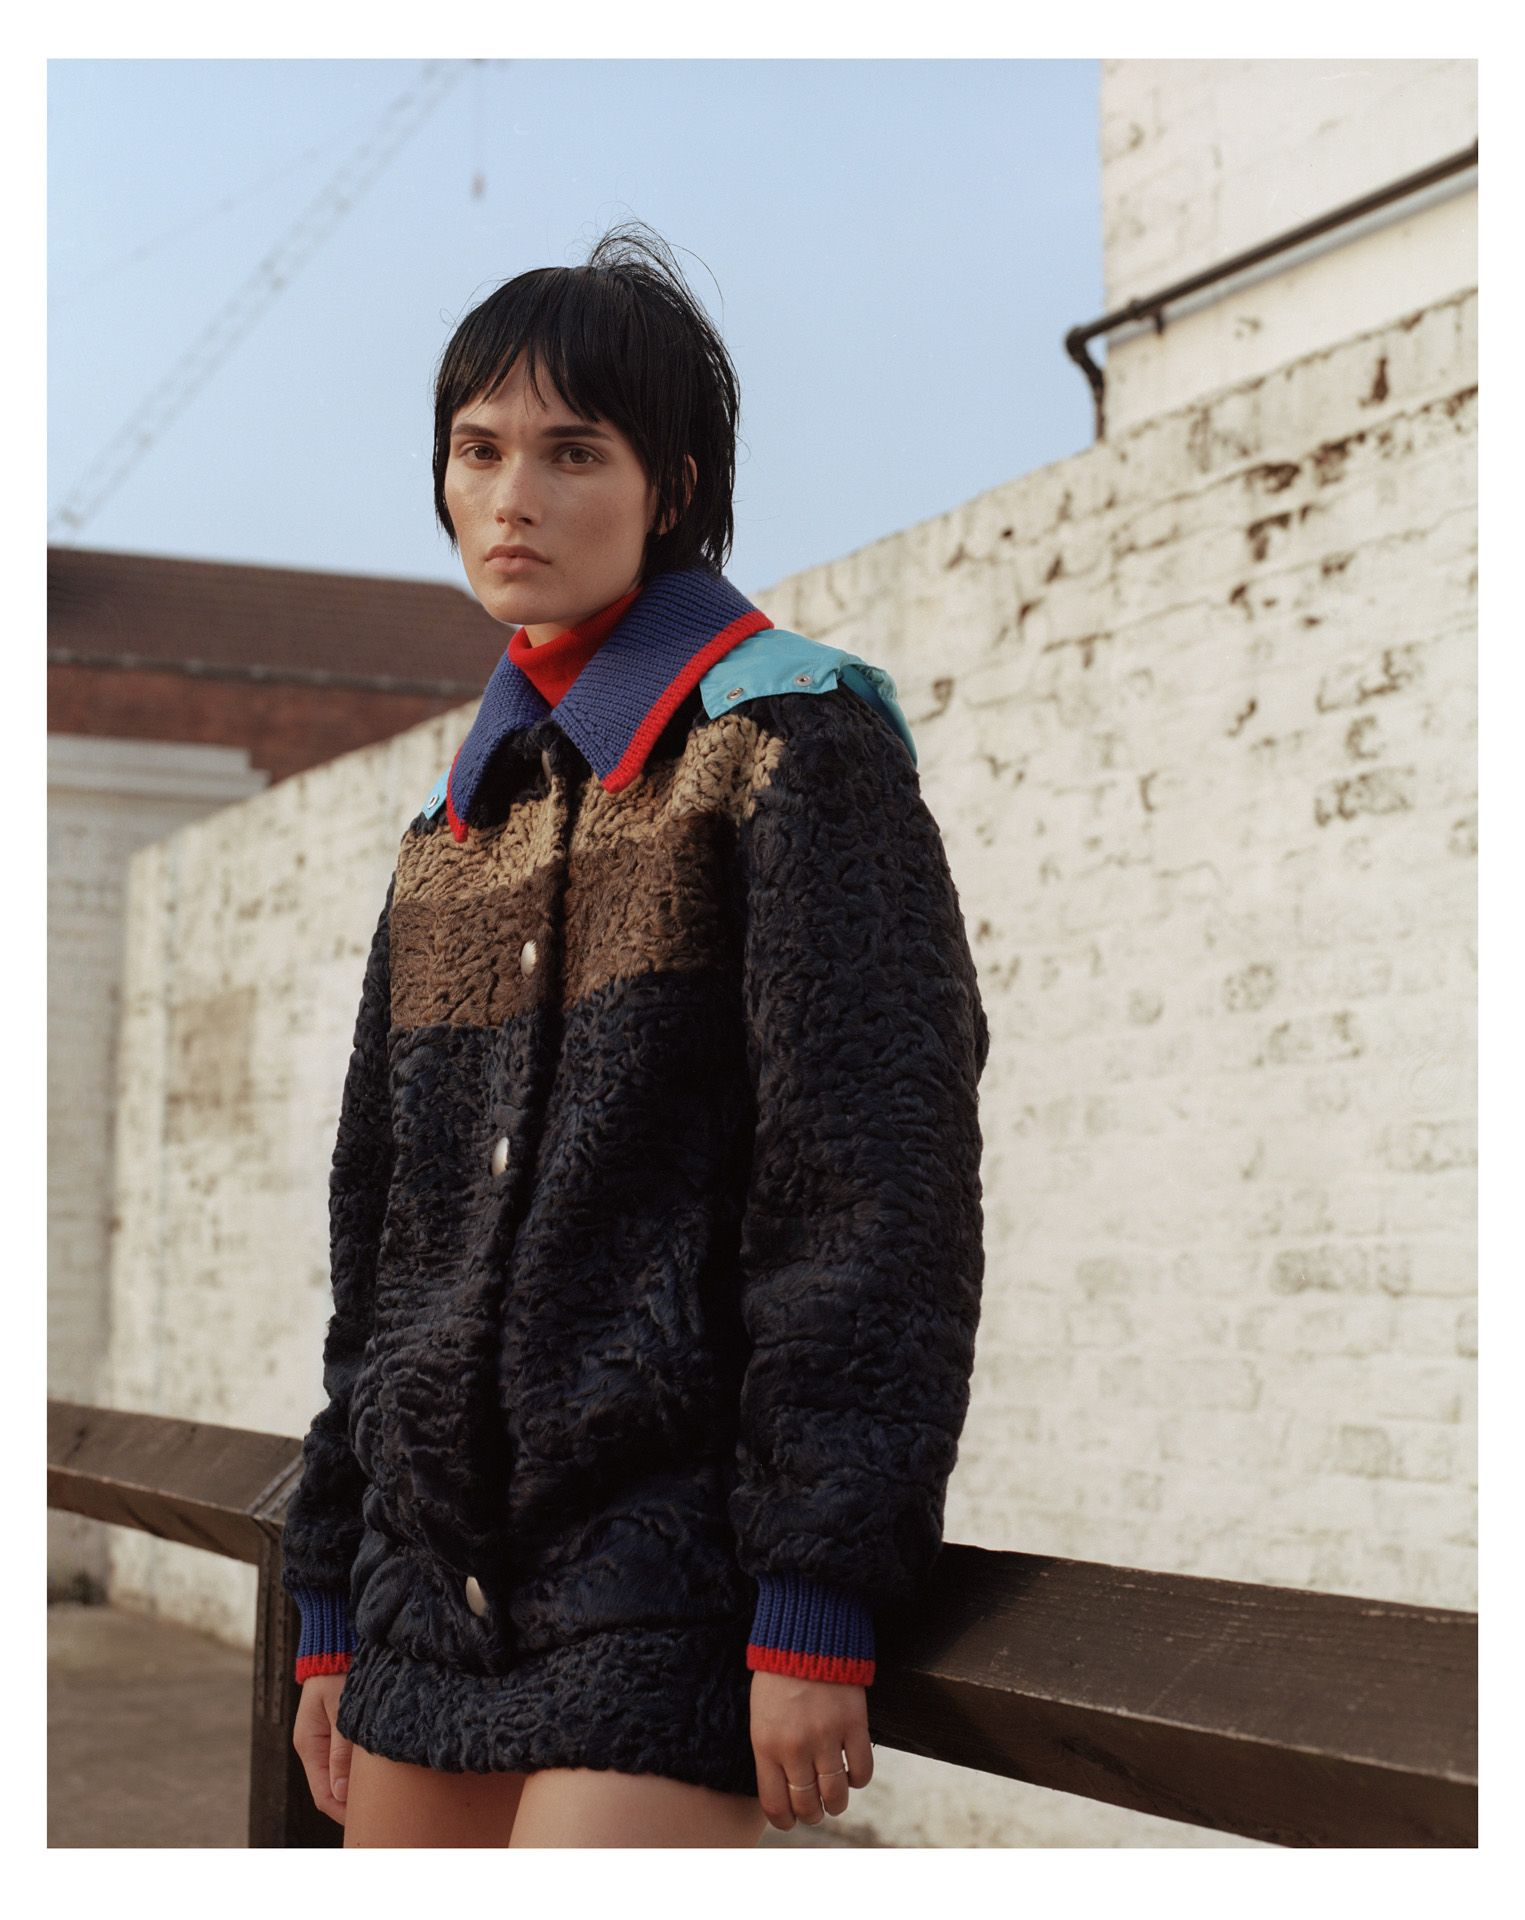 black haired model wearing fluffy colourful coat by Maxyme G Delisle for Fraulein Magazine fashion editorial